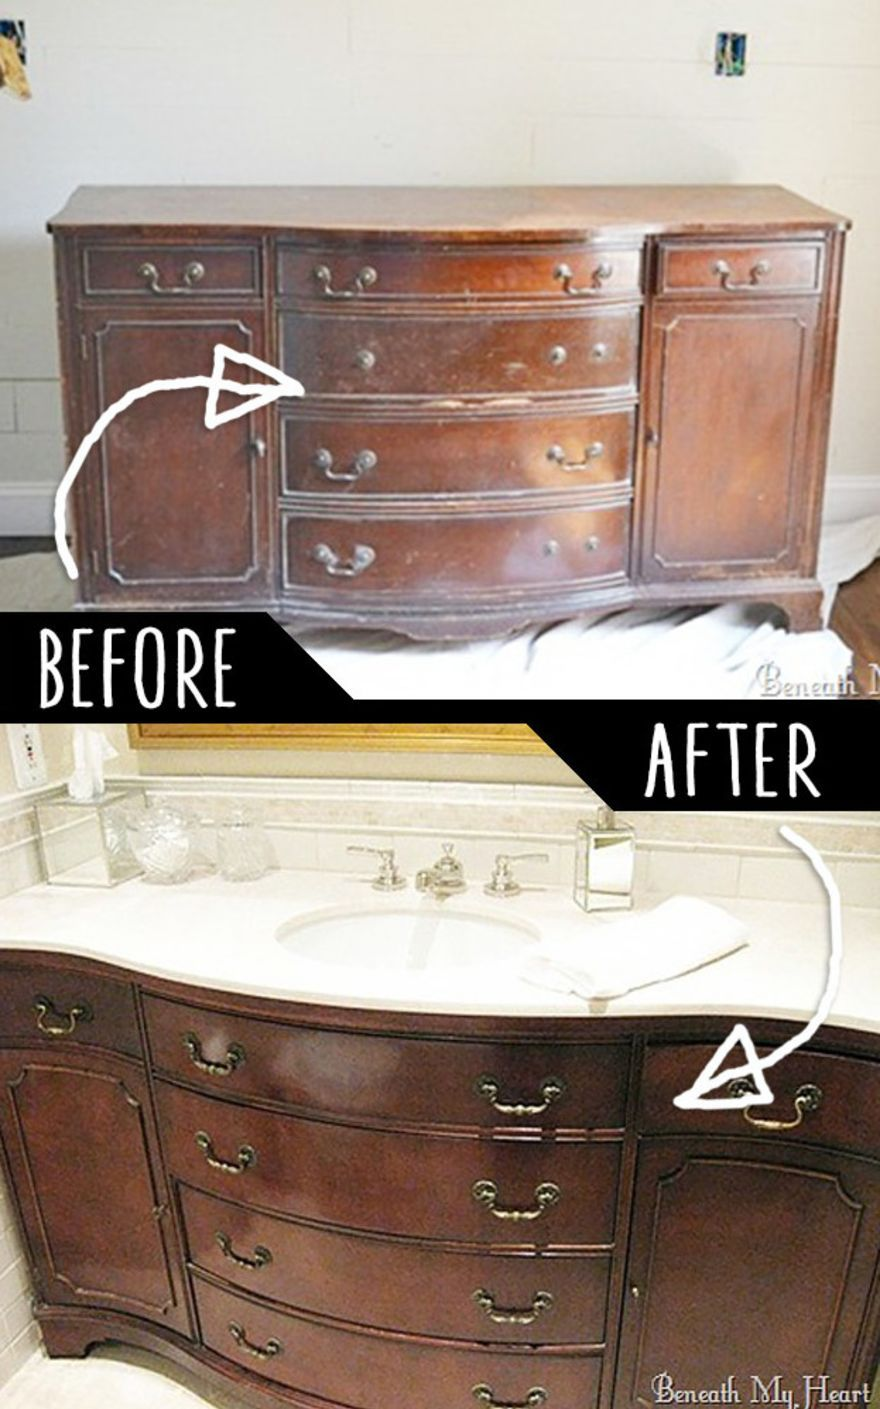 Make A Bathroom Vanity Out Of An Old Dresser!